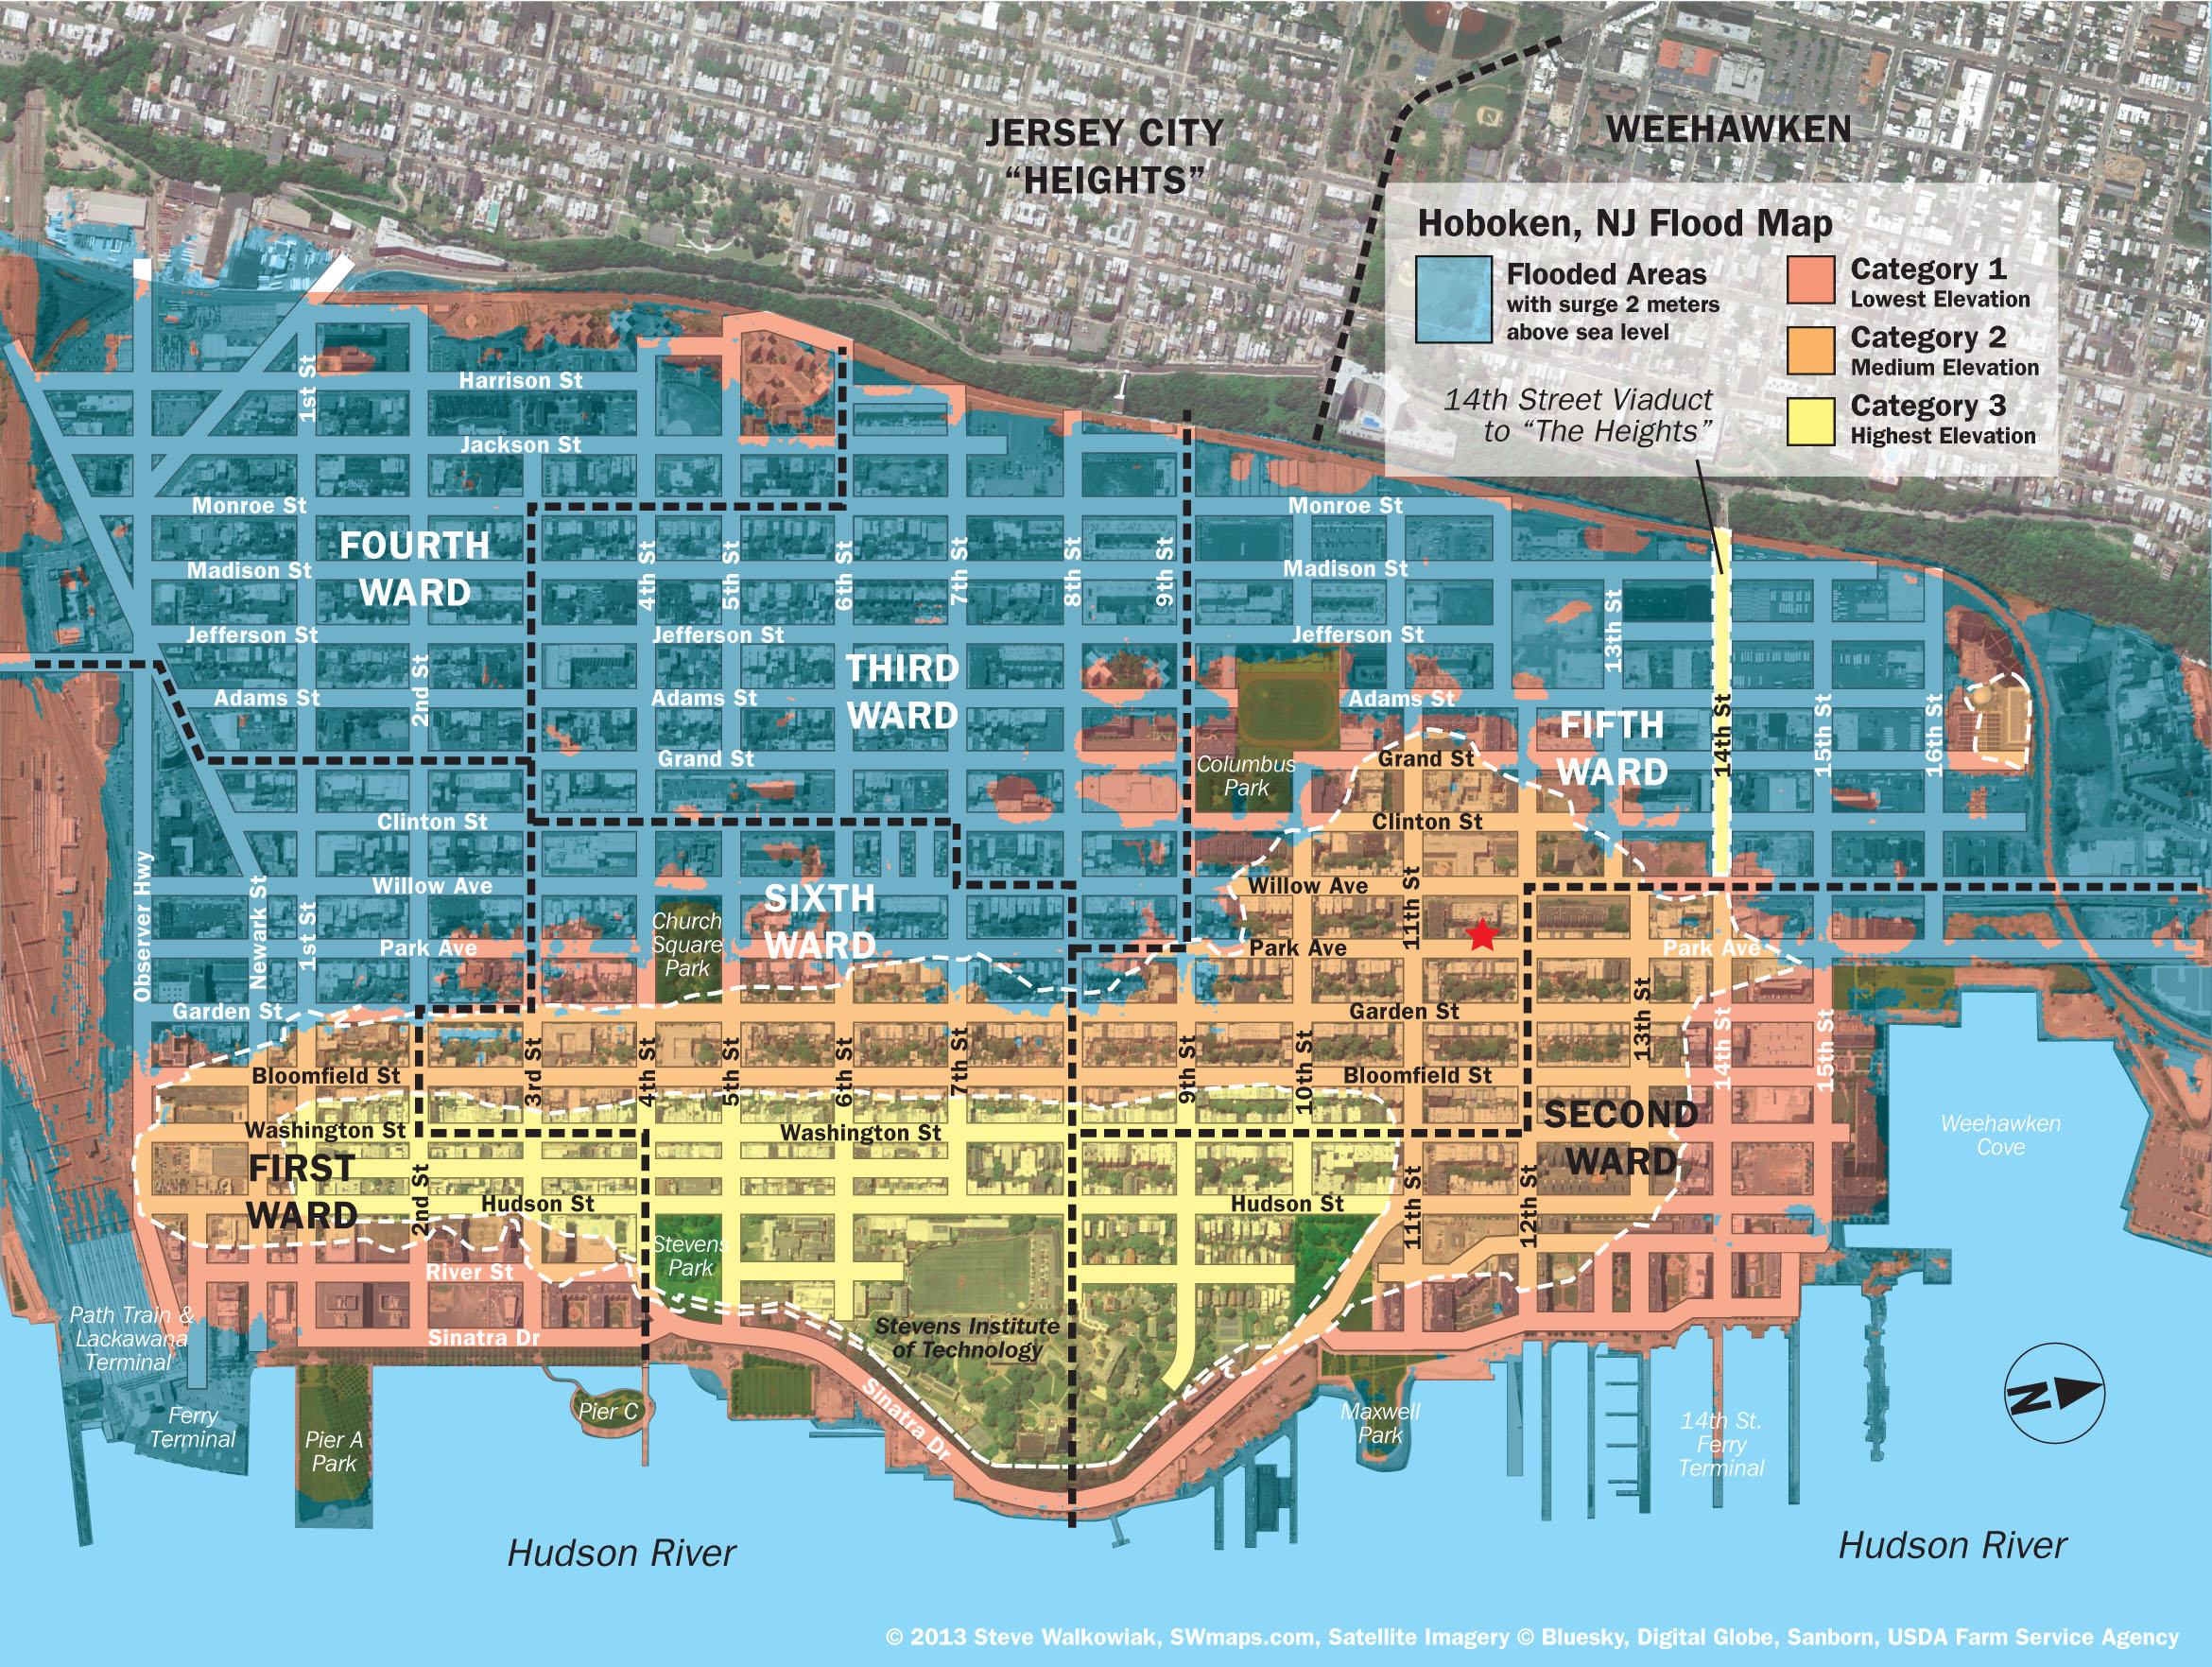 Water Elevation Map.New Hoboken Flood Map With Water Levels Post Hurricane Sandy